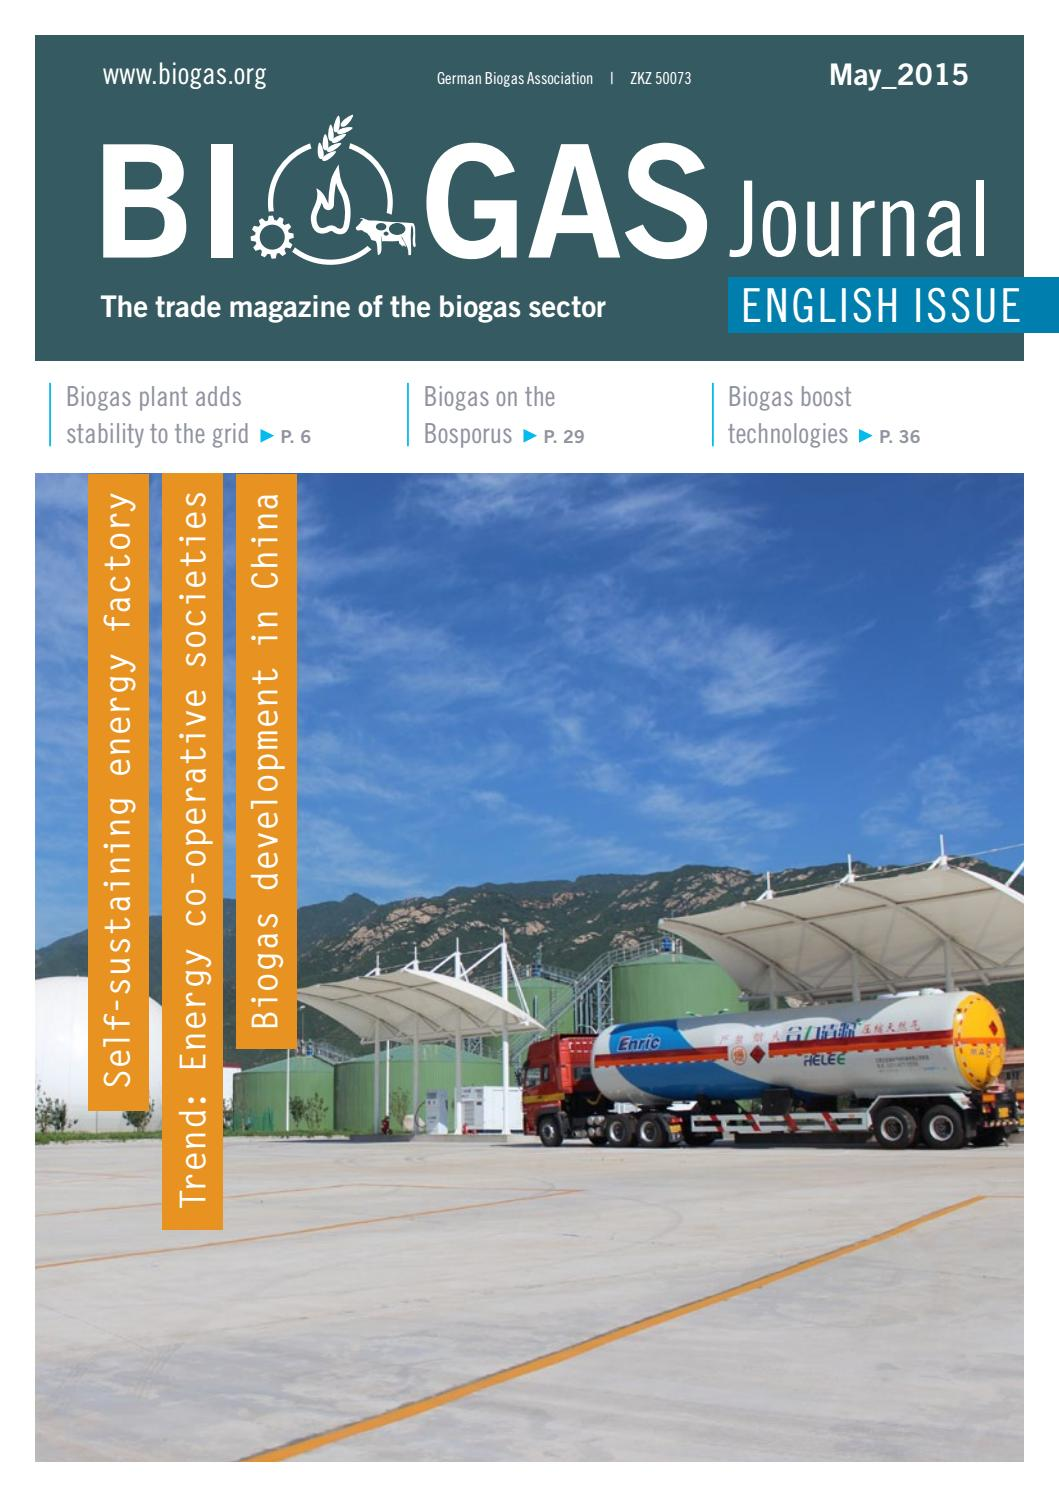 Biogas Journal English Issue May 2015 by Fachverband Biogas e V  - issuu